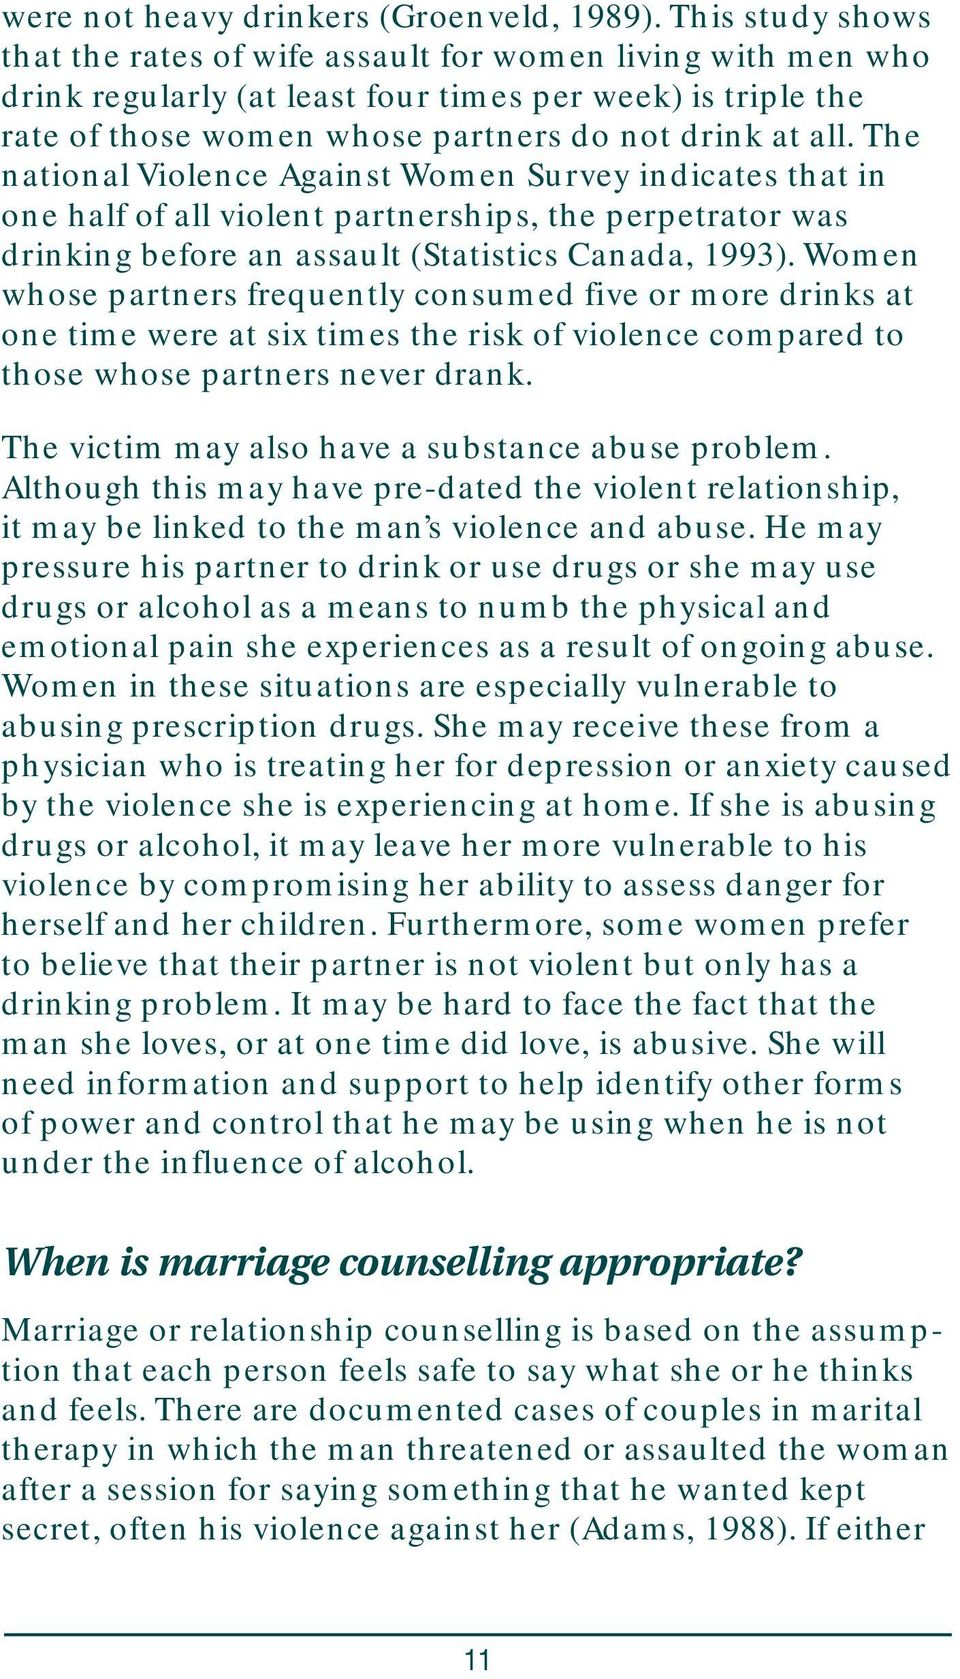 The national Violence Against Women Survey indicates that in one half of all violent partnerships, the perpetrator was drinking before an assault (Statistics Canada, 1993).